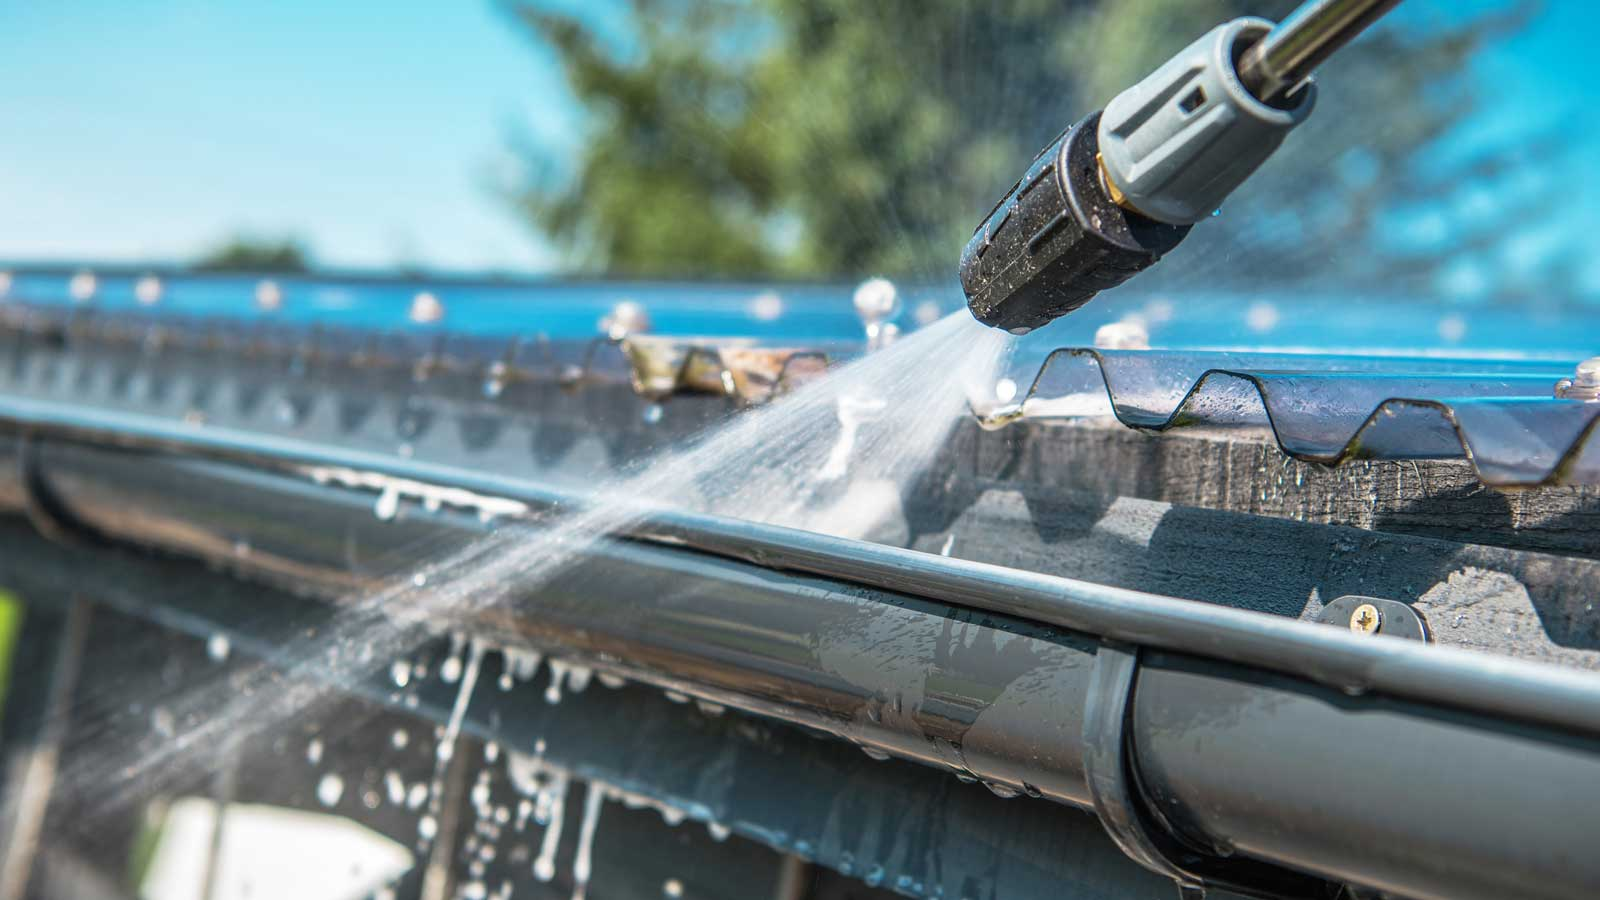 Close up of power-washing wand tip spraying water into a gutter.